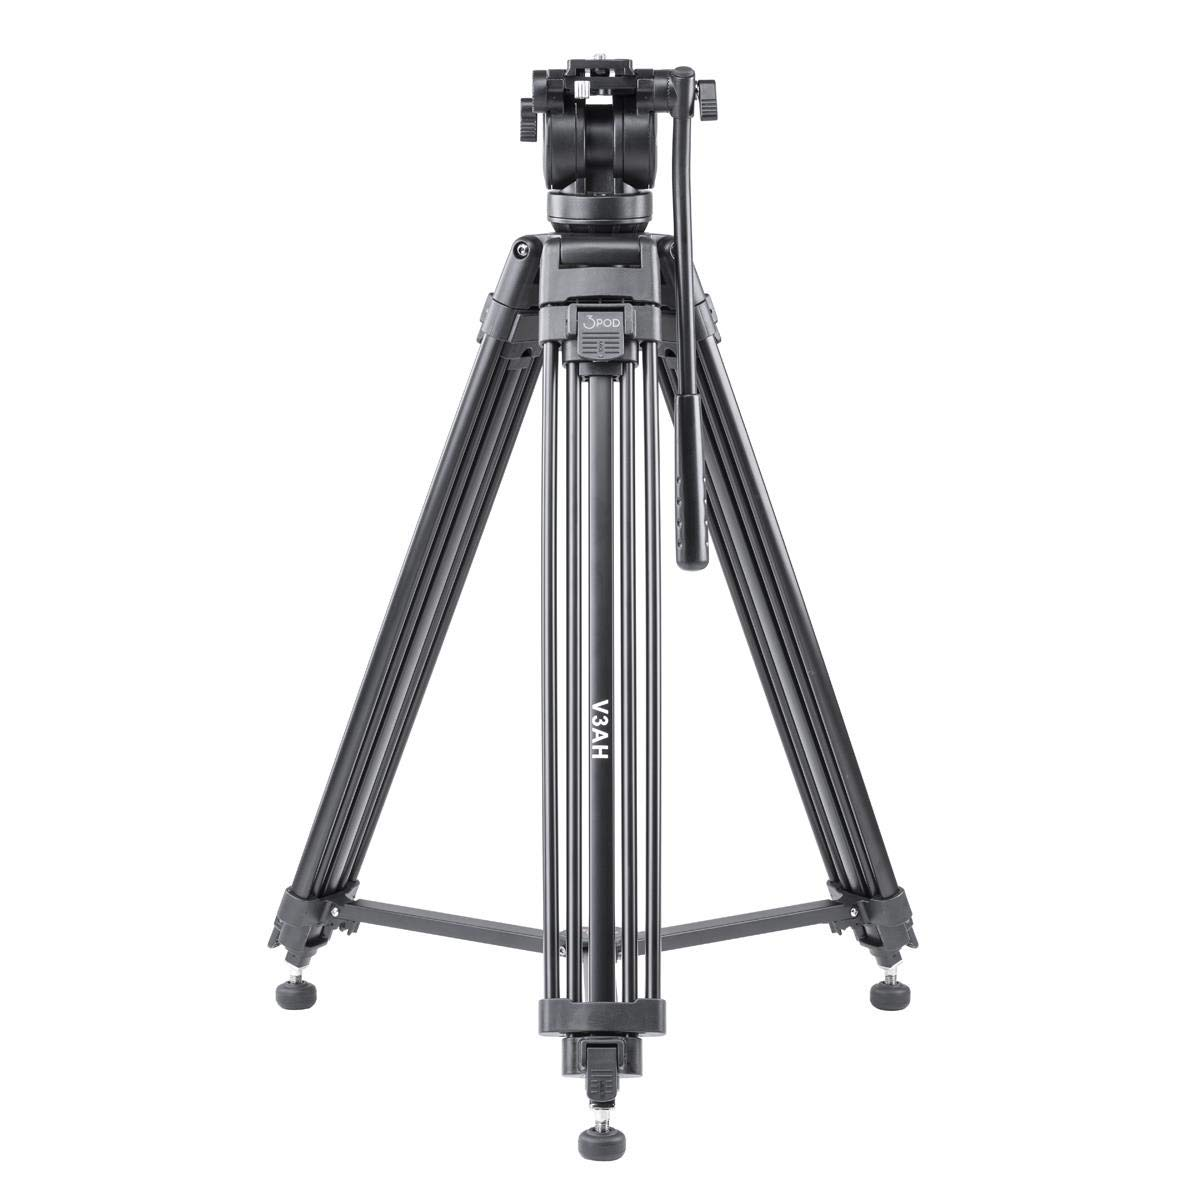 3Pod V3AH Video Tripod System Anodized Aluminum with 2-way Fluid Head & Quick-Release Plate: Include Free Carrying Case